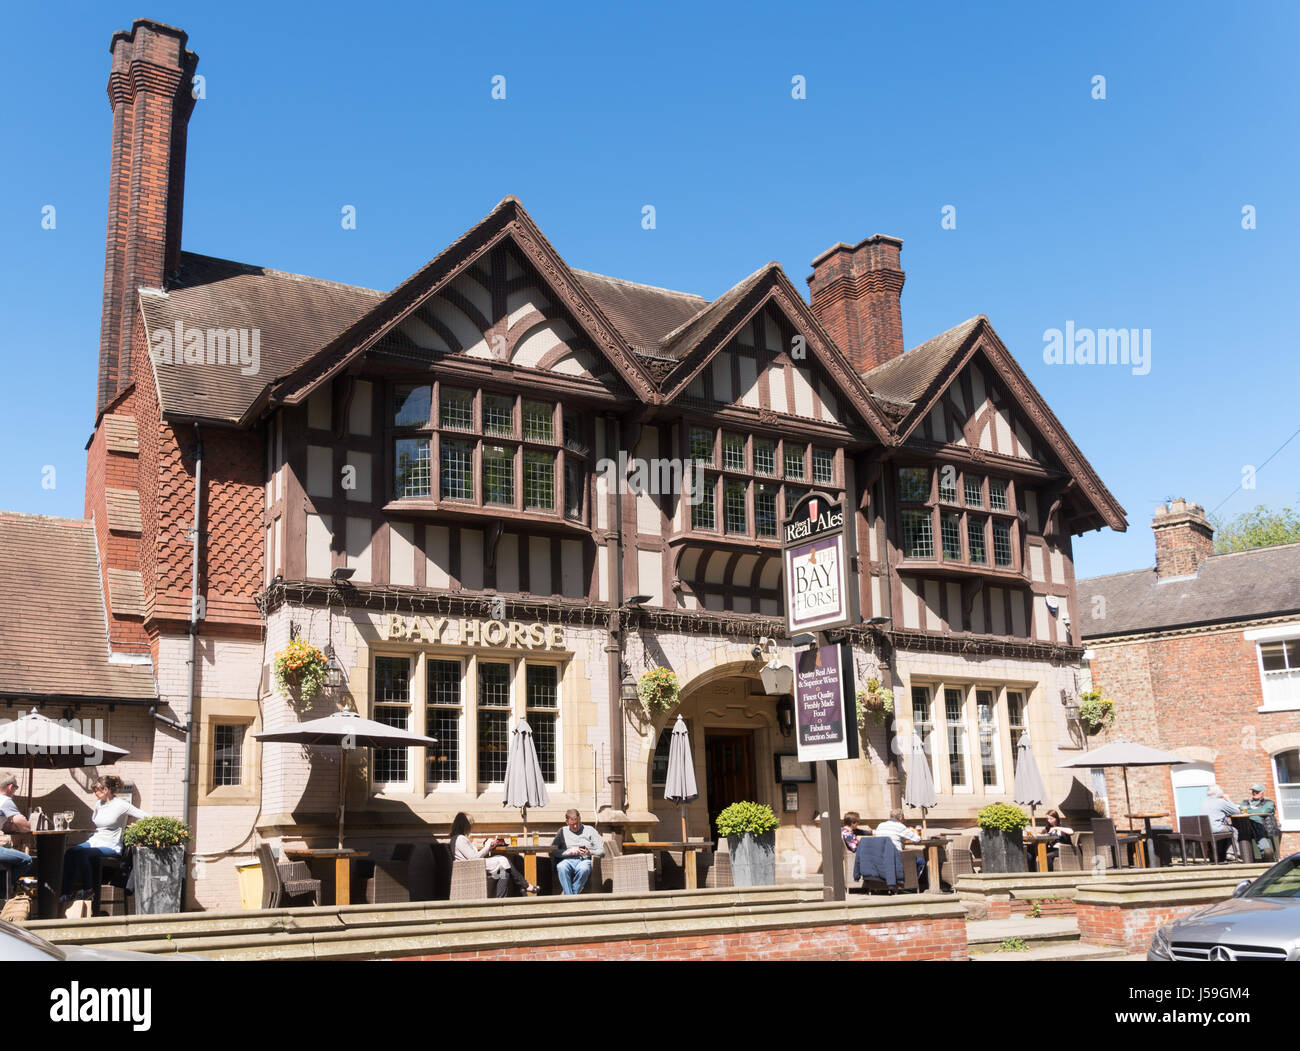 The Bay Horse pub in Marygate, York, England, UK - Stock Image